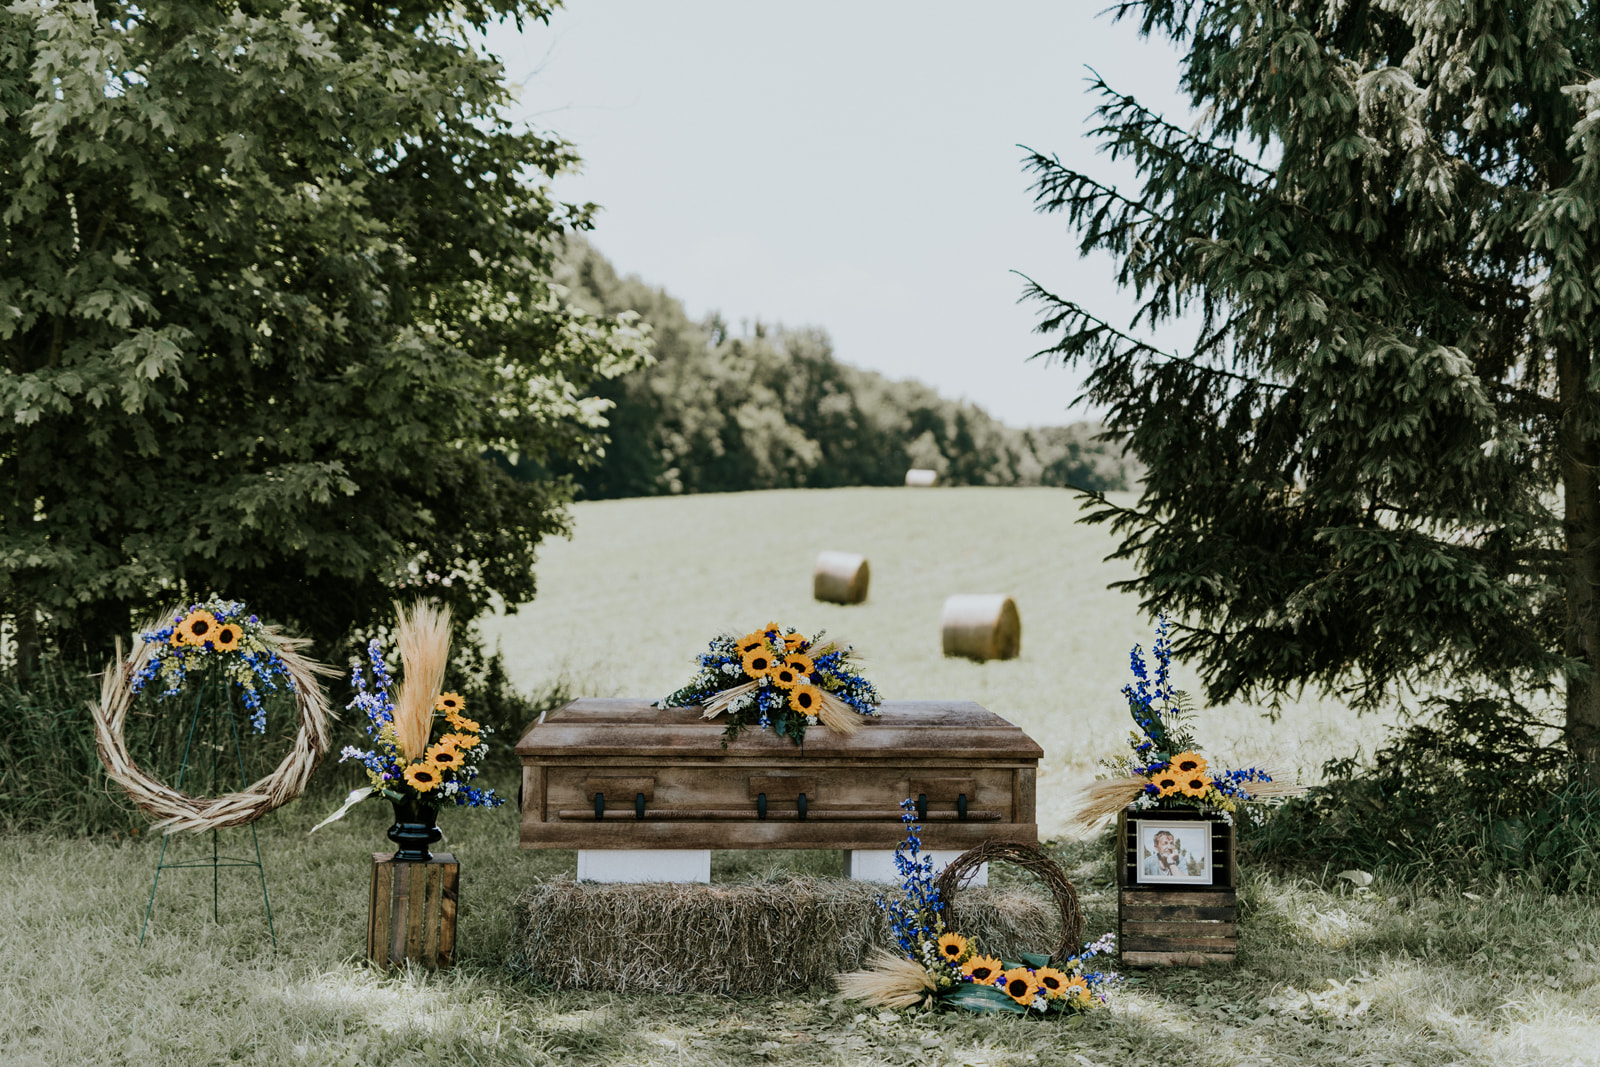 The Bounty Collection derives its inspiration from earth and field, the wheat and sunflowers of late summer accented by the delphinium growing in the garden and aster growing on the path.  The collection is comprised of five floral pieces: the casket spray, a 36-inch grapevine wreath on an easel, a jardiniere arrangement, a pedestal arrangement, and a 24-inch grapevine wreath memorial urn arrangement. All the pieces utilize the elements of wheat, sunflowers, blue delphinium, and aster.